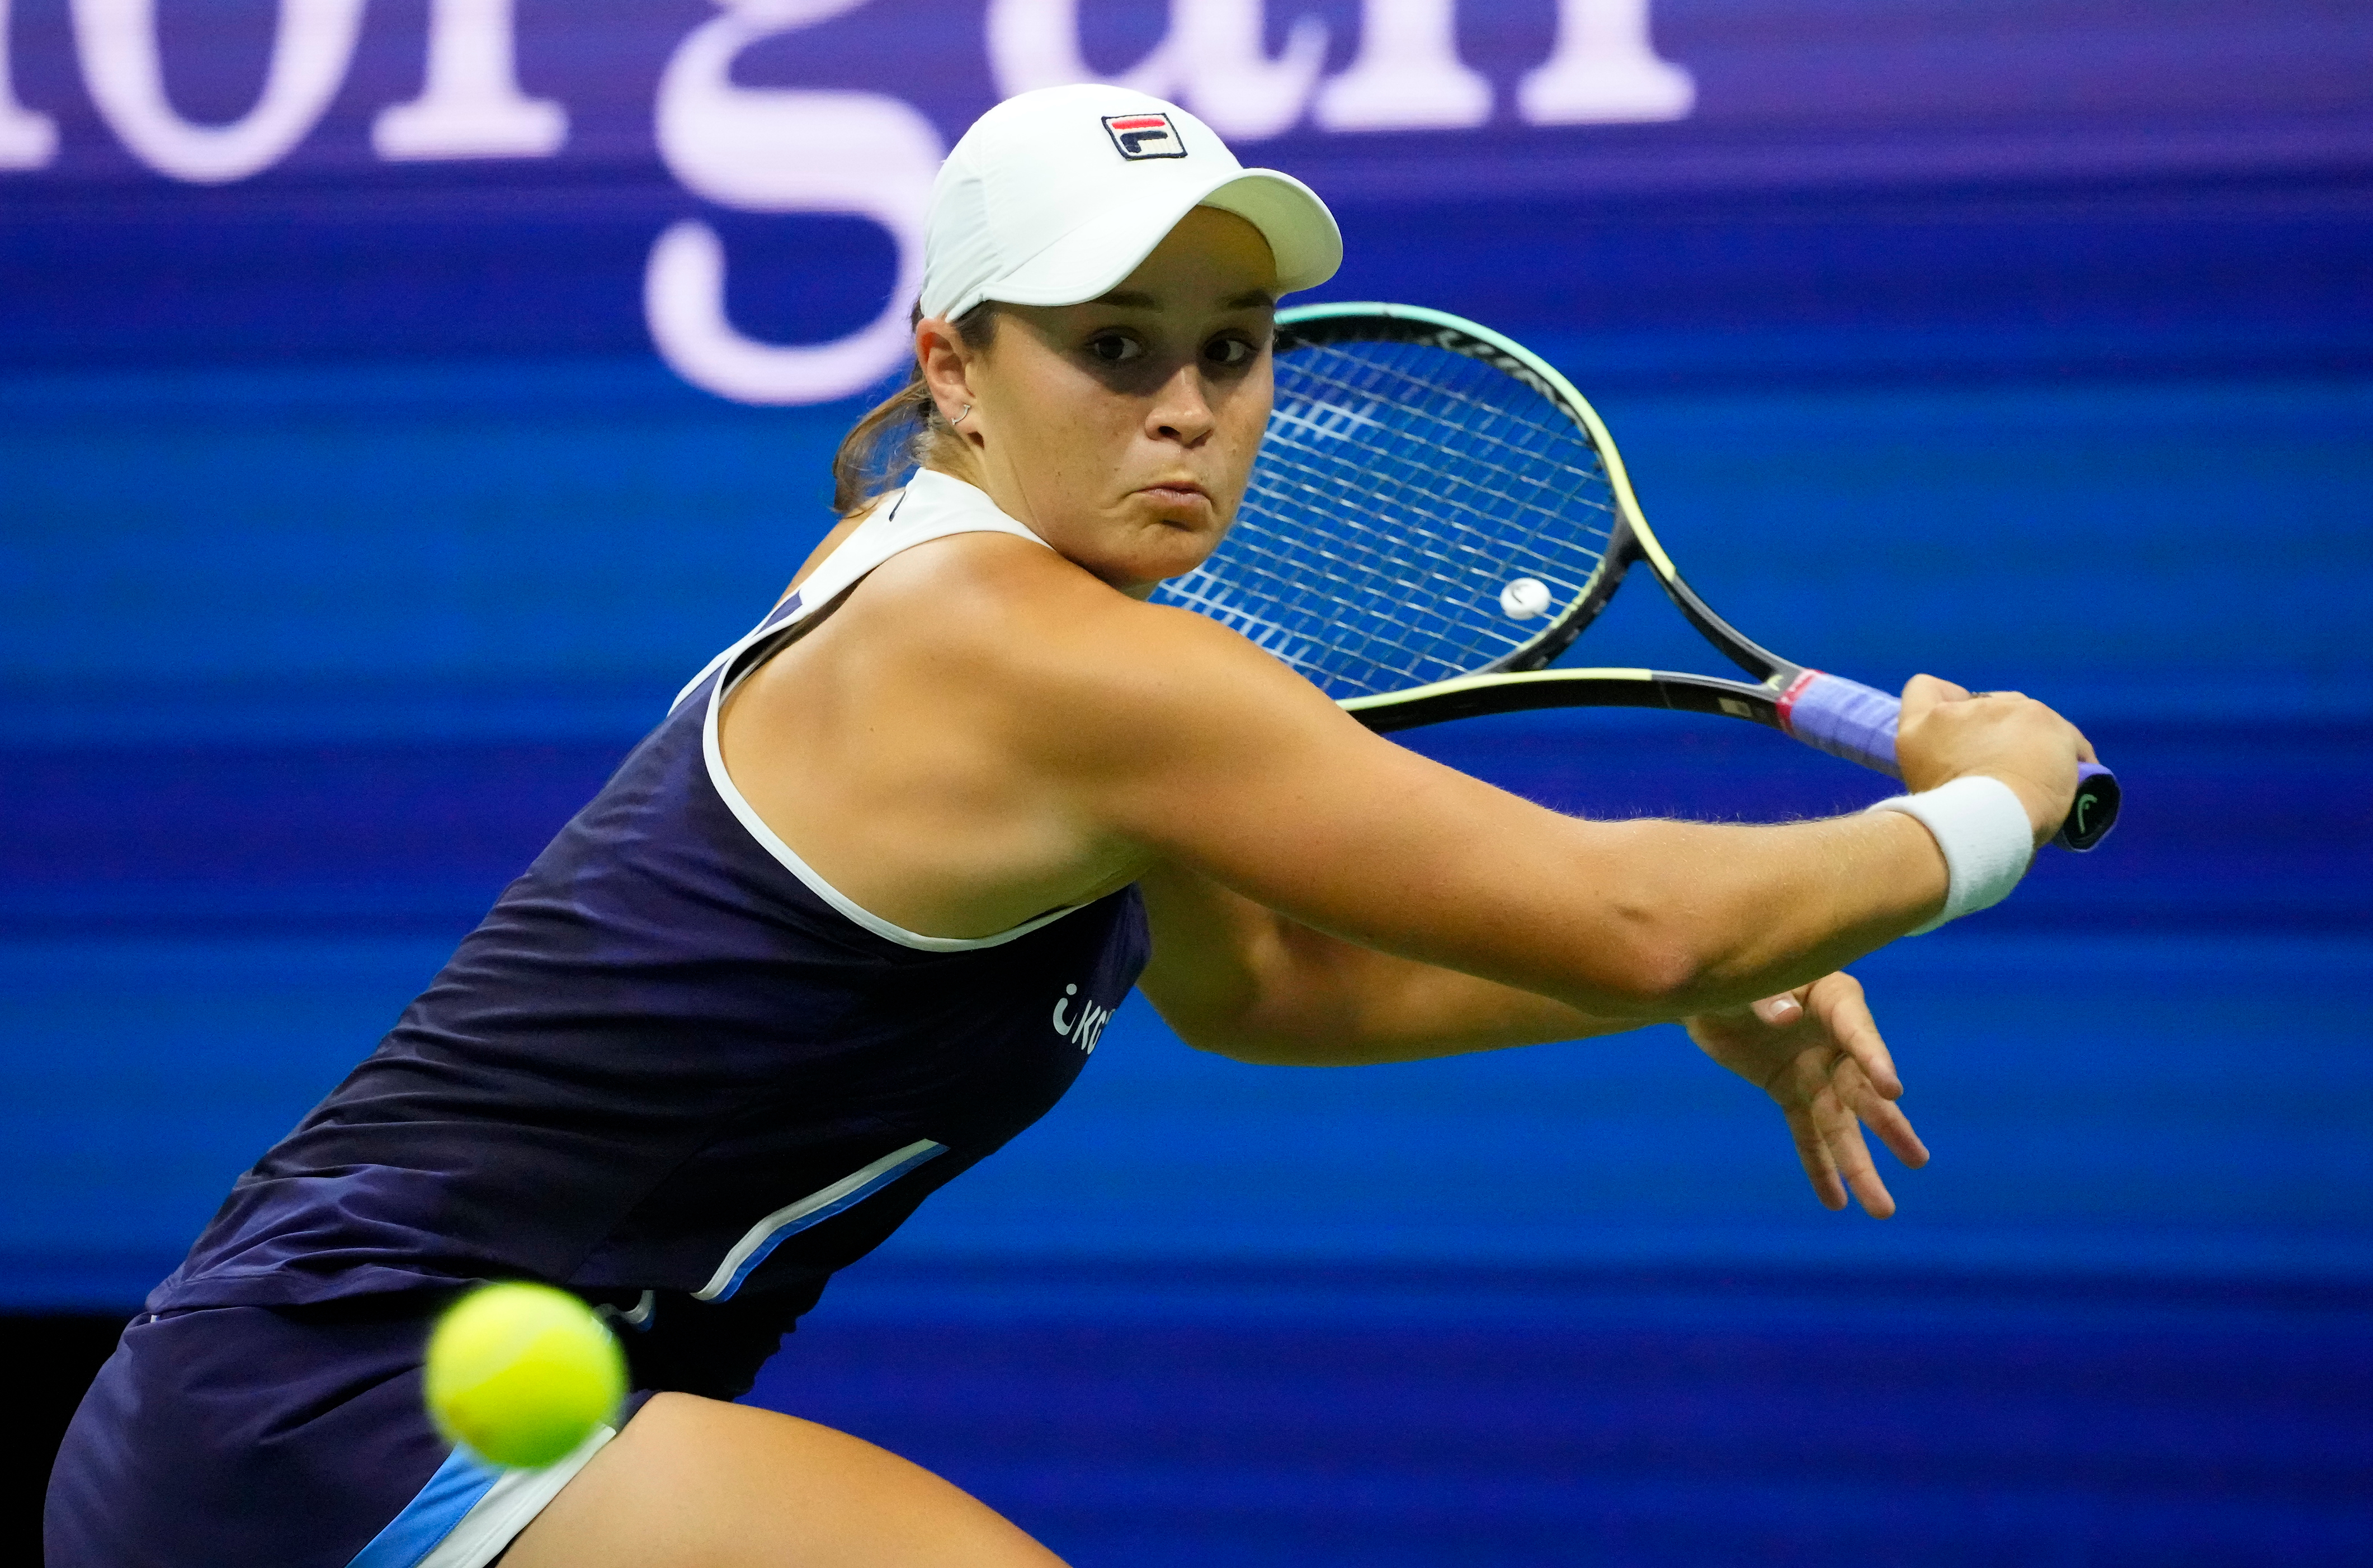 Sep 4, 2021; Flushing, NY, USA;  Ashleigh Barty of Australia hits to Shelby Rogers of the USA on day six of the 2021 U.S. Open tennis tournament at USTA Billie Jean King National Tennis Center. Mandatory Credit: Robert Deutsch-USA TODAY Sports/File photo